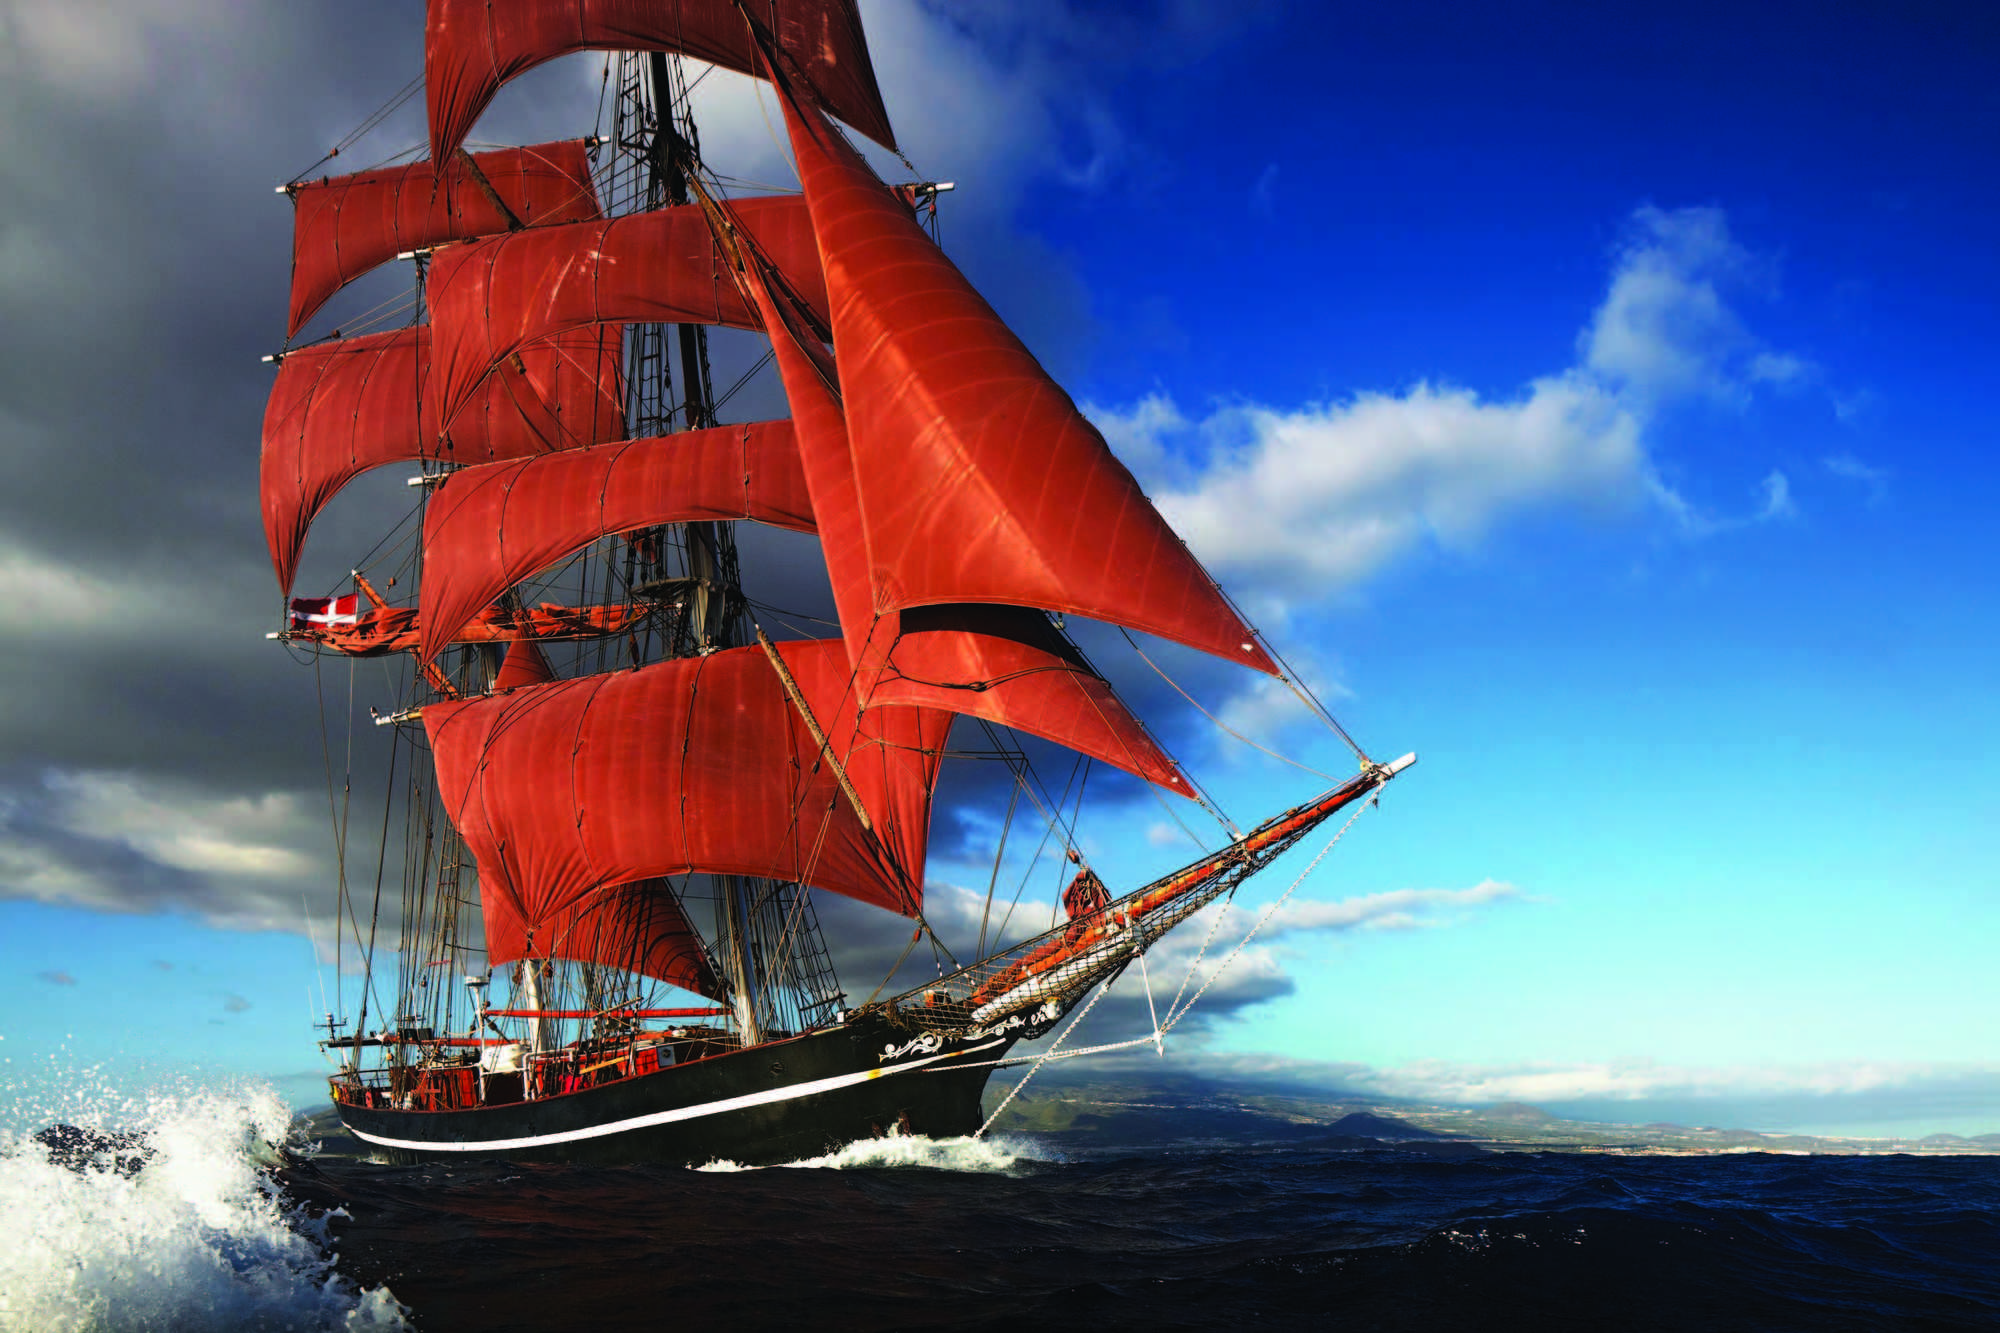 http://wejetlovers.wehomeowners.com/wp-content/uploads/2016/07/Tall-Ship.jpg